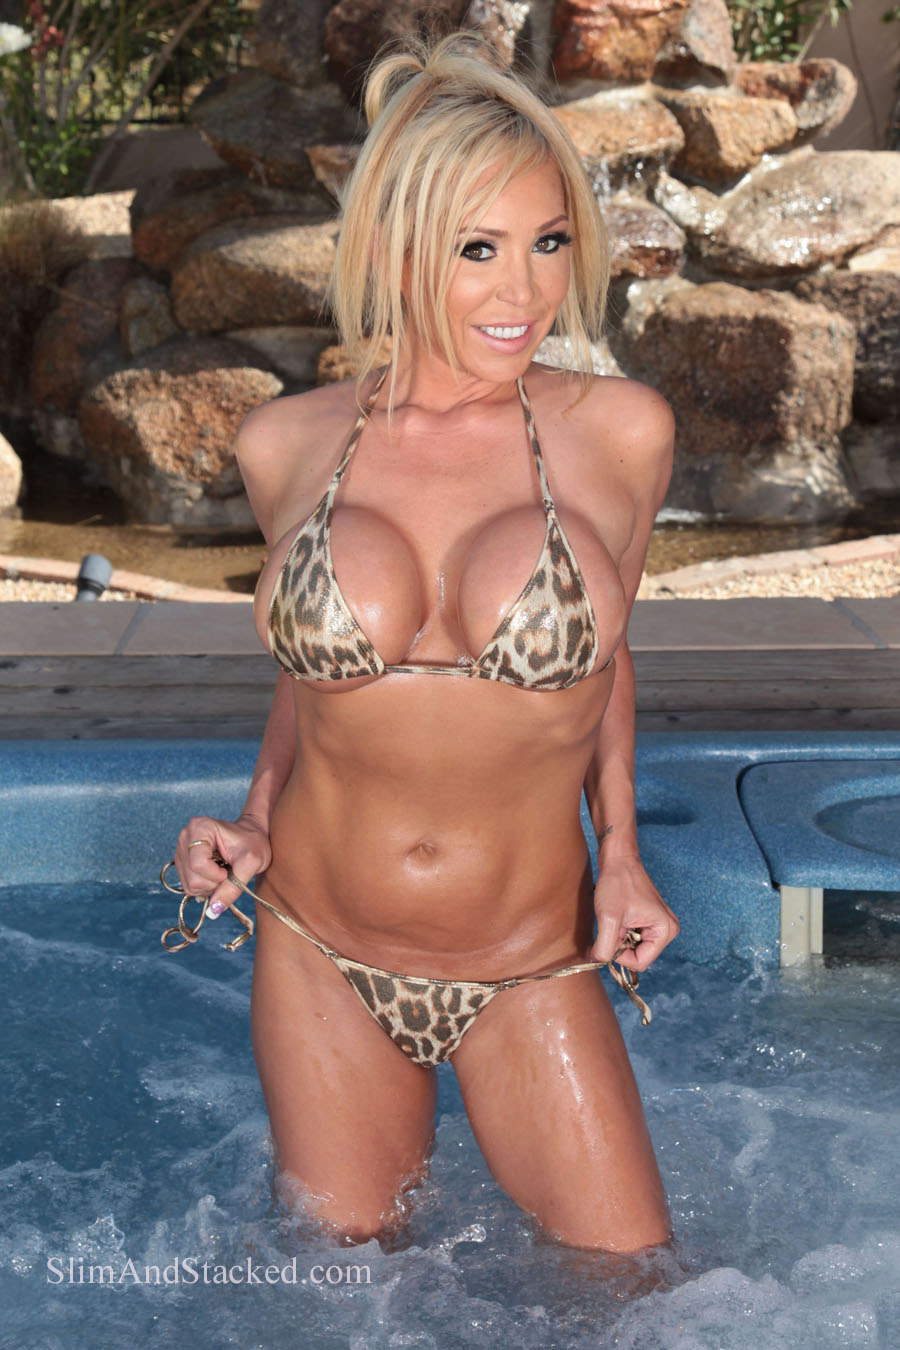 Mary Carey is smokin' hot in a tiny animal print bikini.  And she gets even hotter when her little top comes off!  See for yourself in ultra high quality, 3000 pixel resolution by owning the entire set.  Email dezertImagez@gmailcom for pricing.